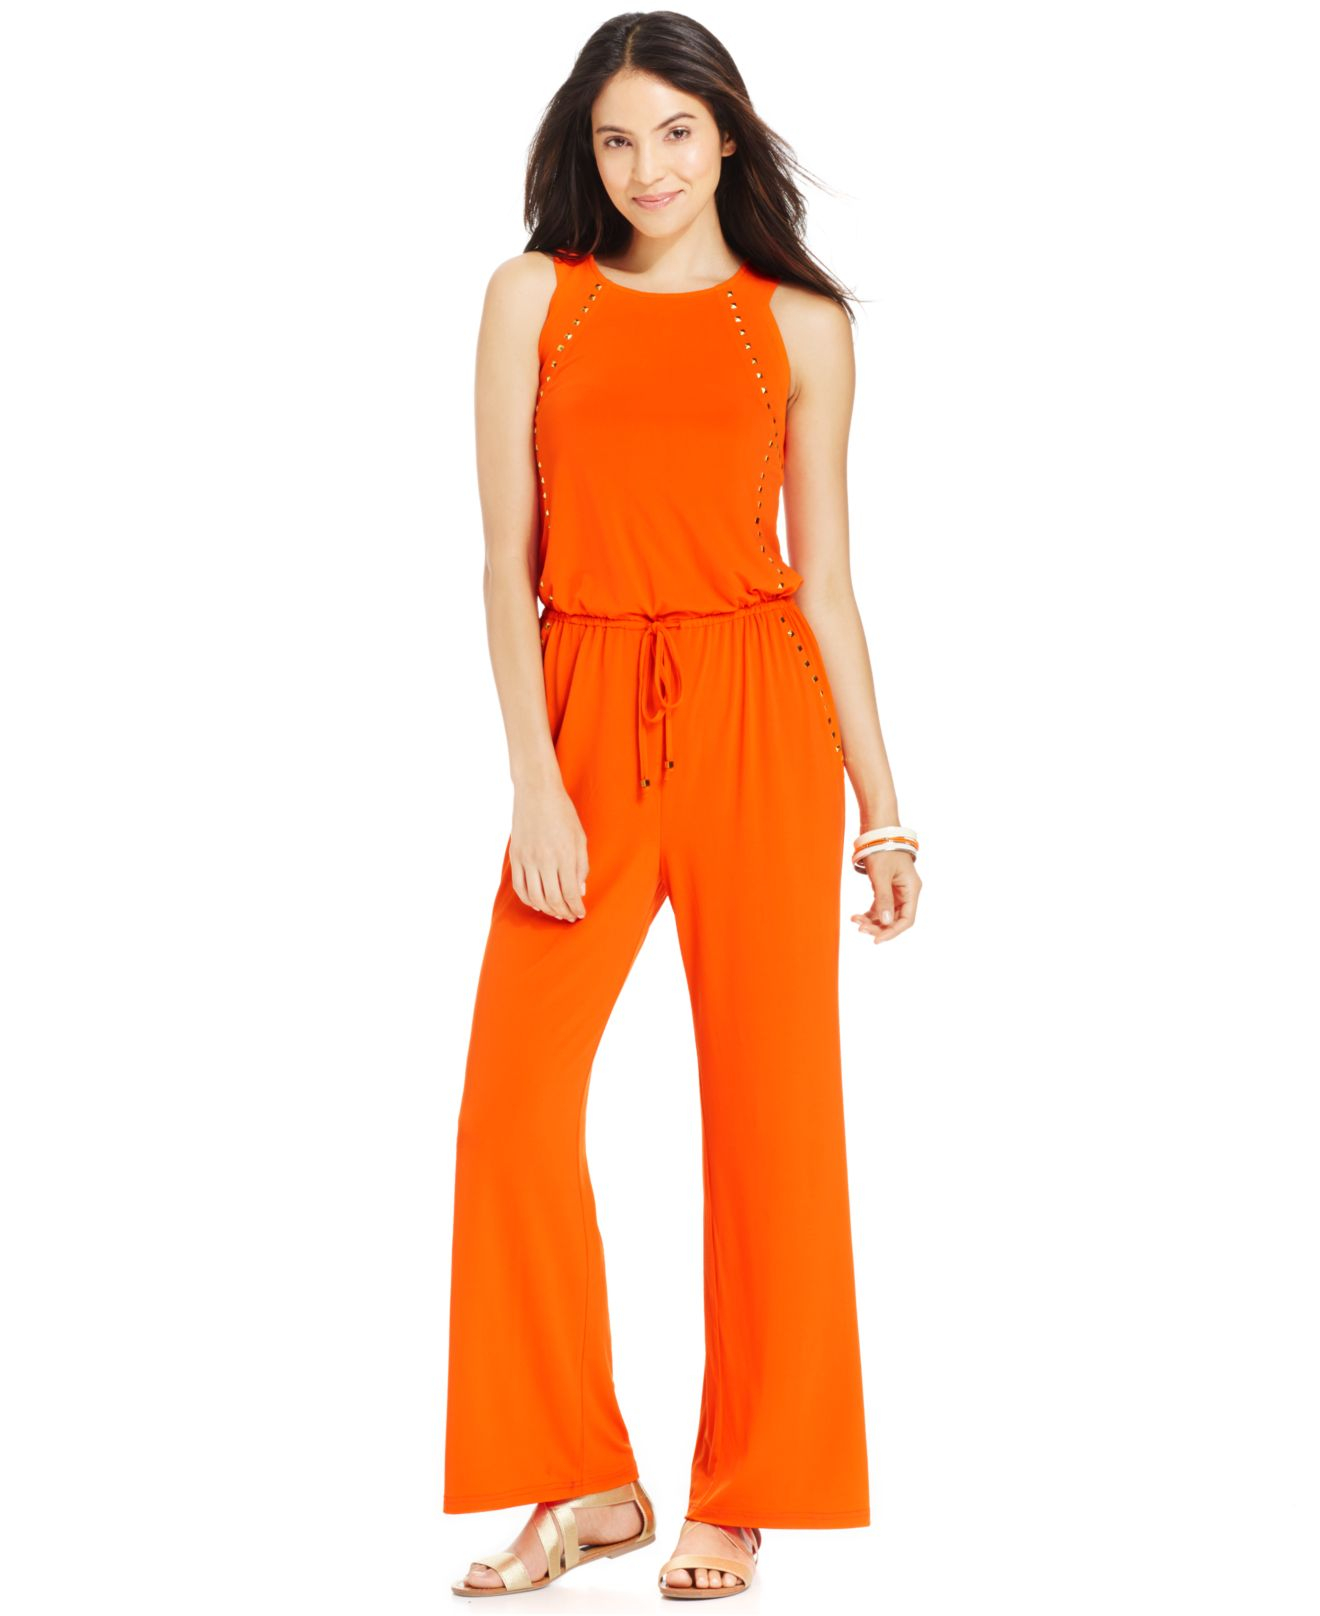 Excellent Miss Chase Orange Long Long Jumpsuit For Women Sleeveless Round Neck